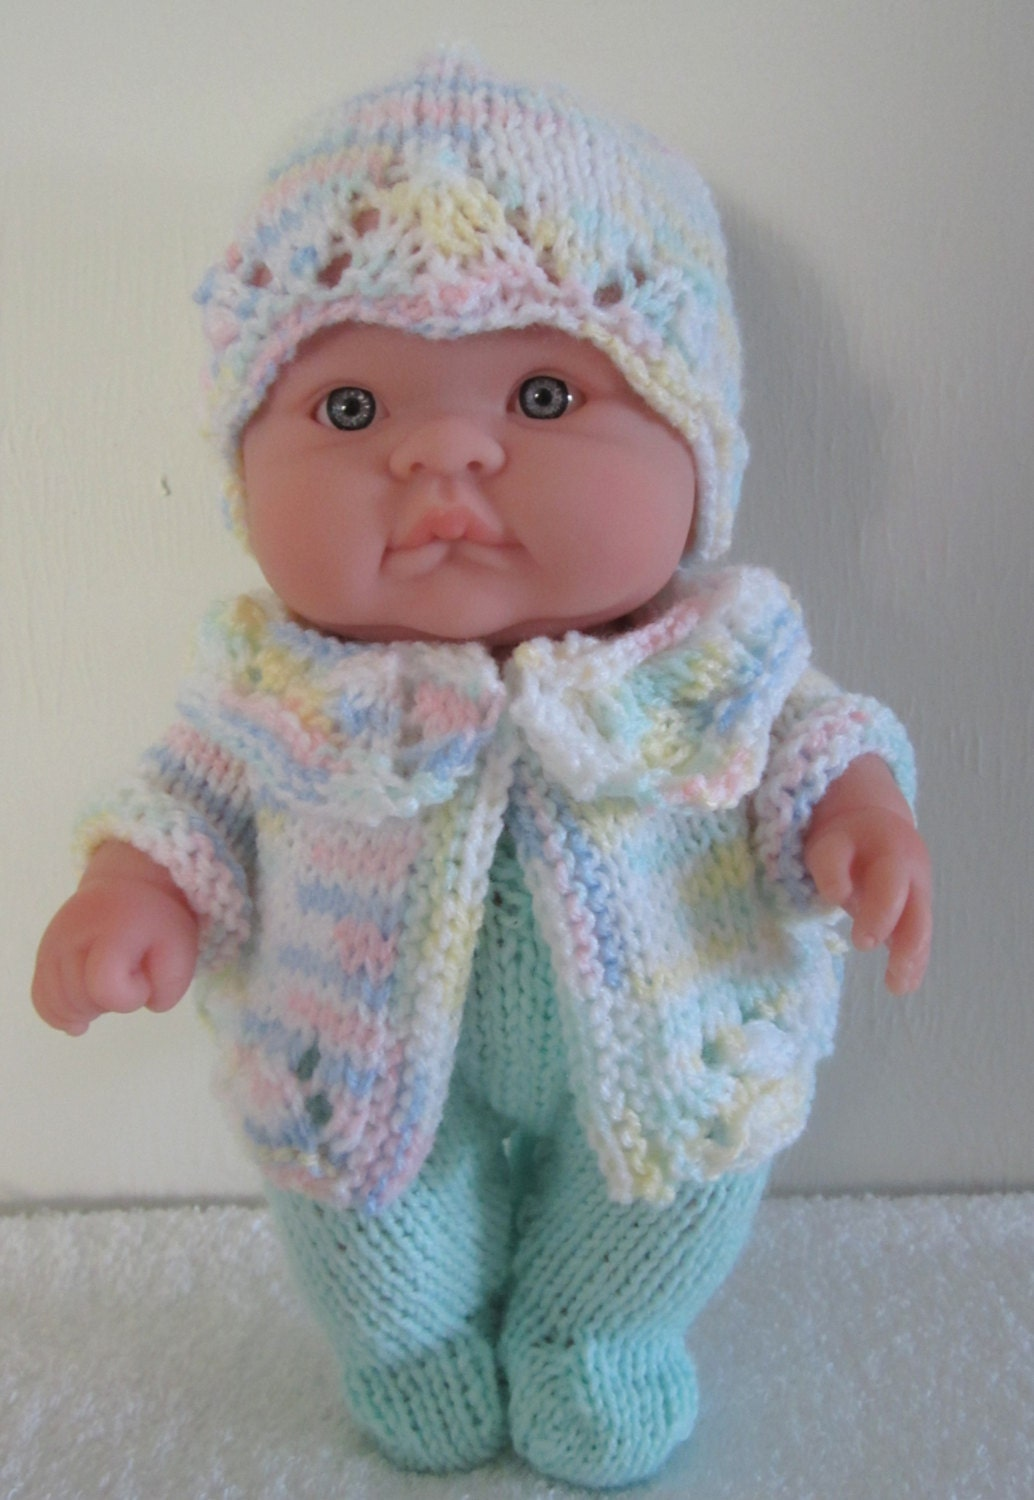 Knitting Patterns For Baby Newborn Doll : Knitting Pattern Berenguer Baby Doll Lace Pram Set for the ...